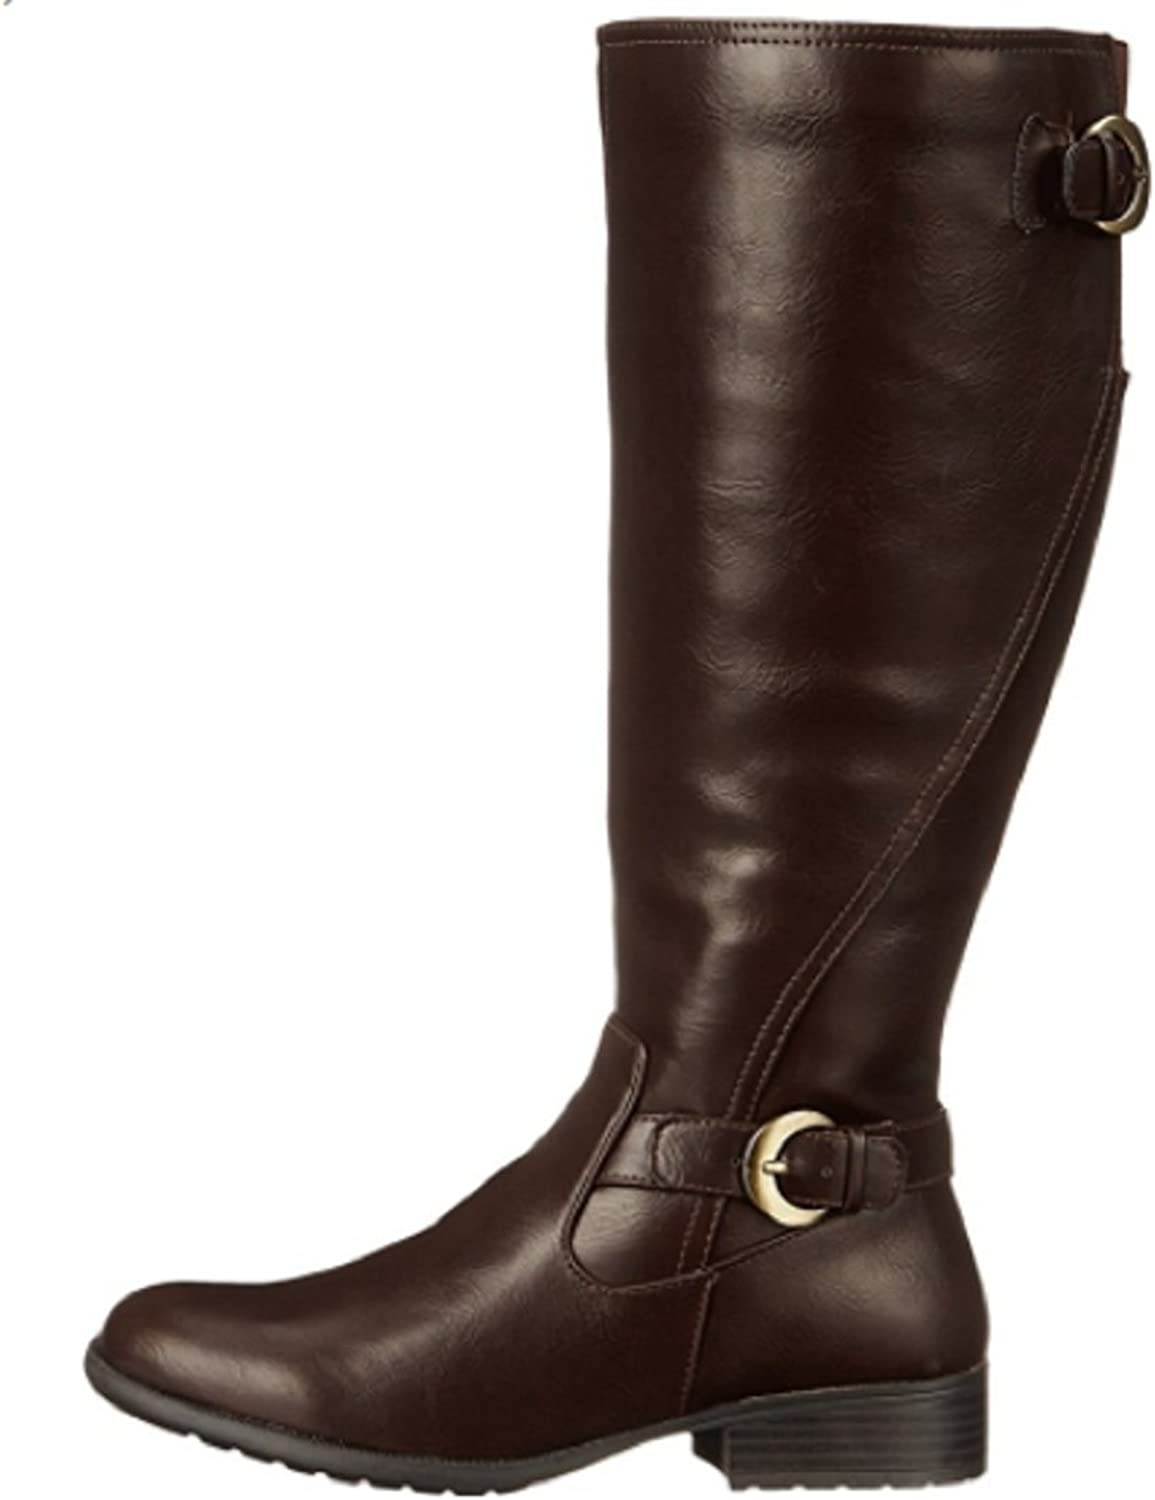 LifeStride Women's Xylans Wide Calf Leather Boots